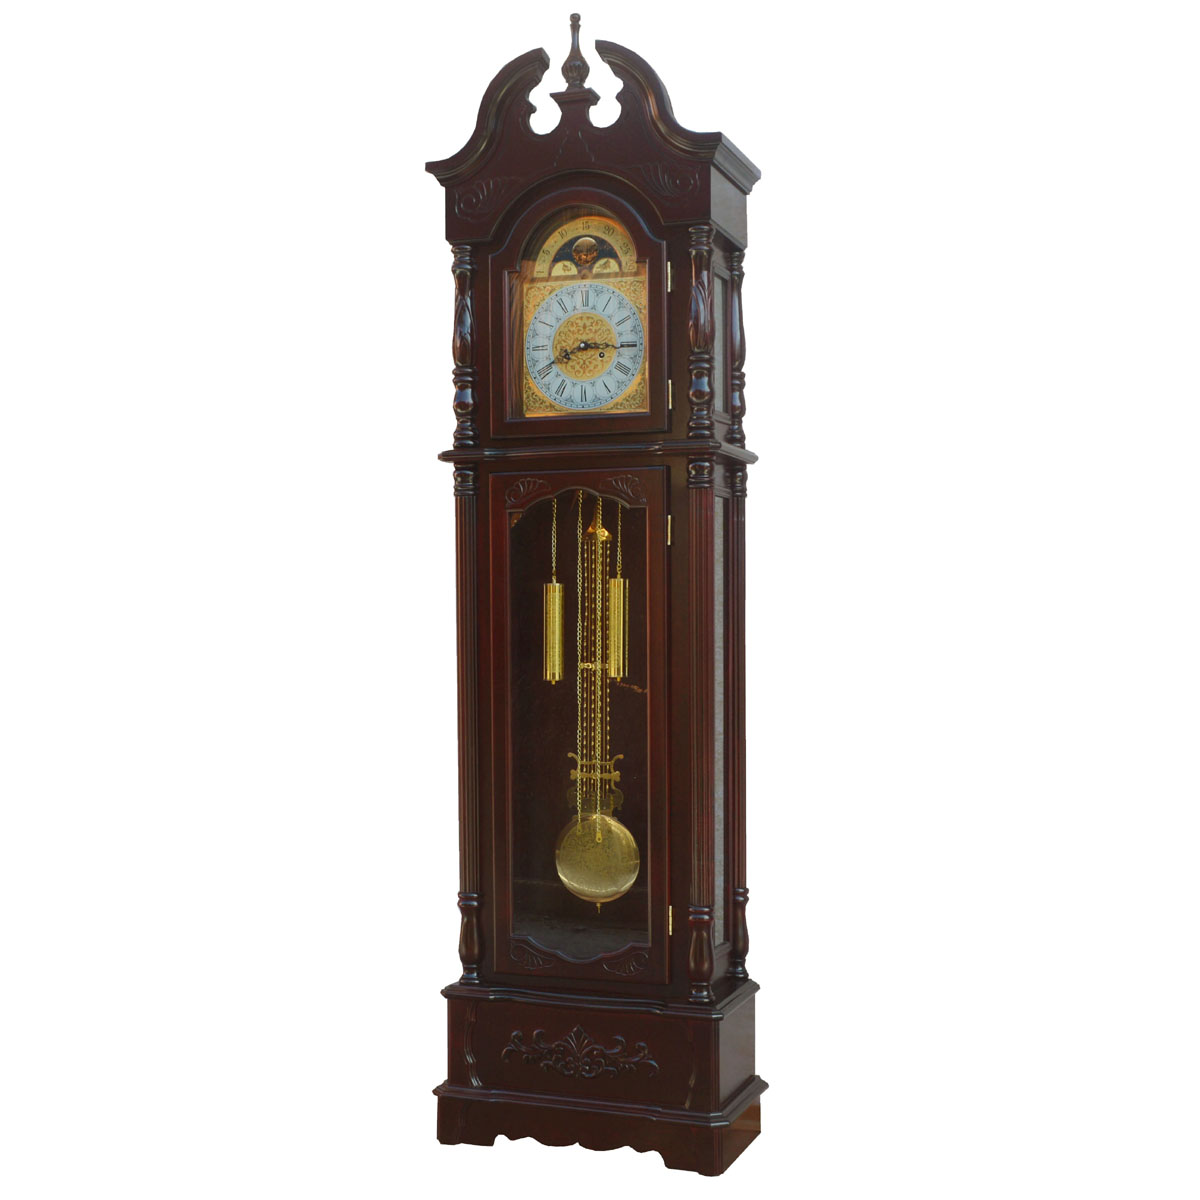 Living room furniture/wood hand carved/polaris movement/chime/european grandfather clock